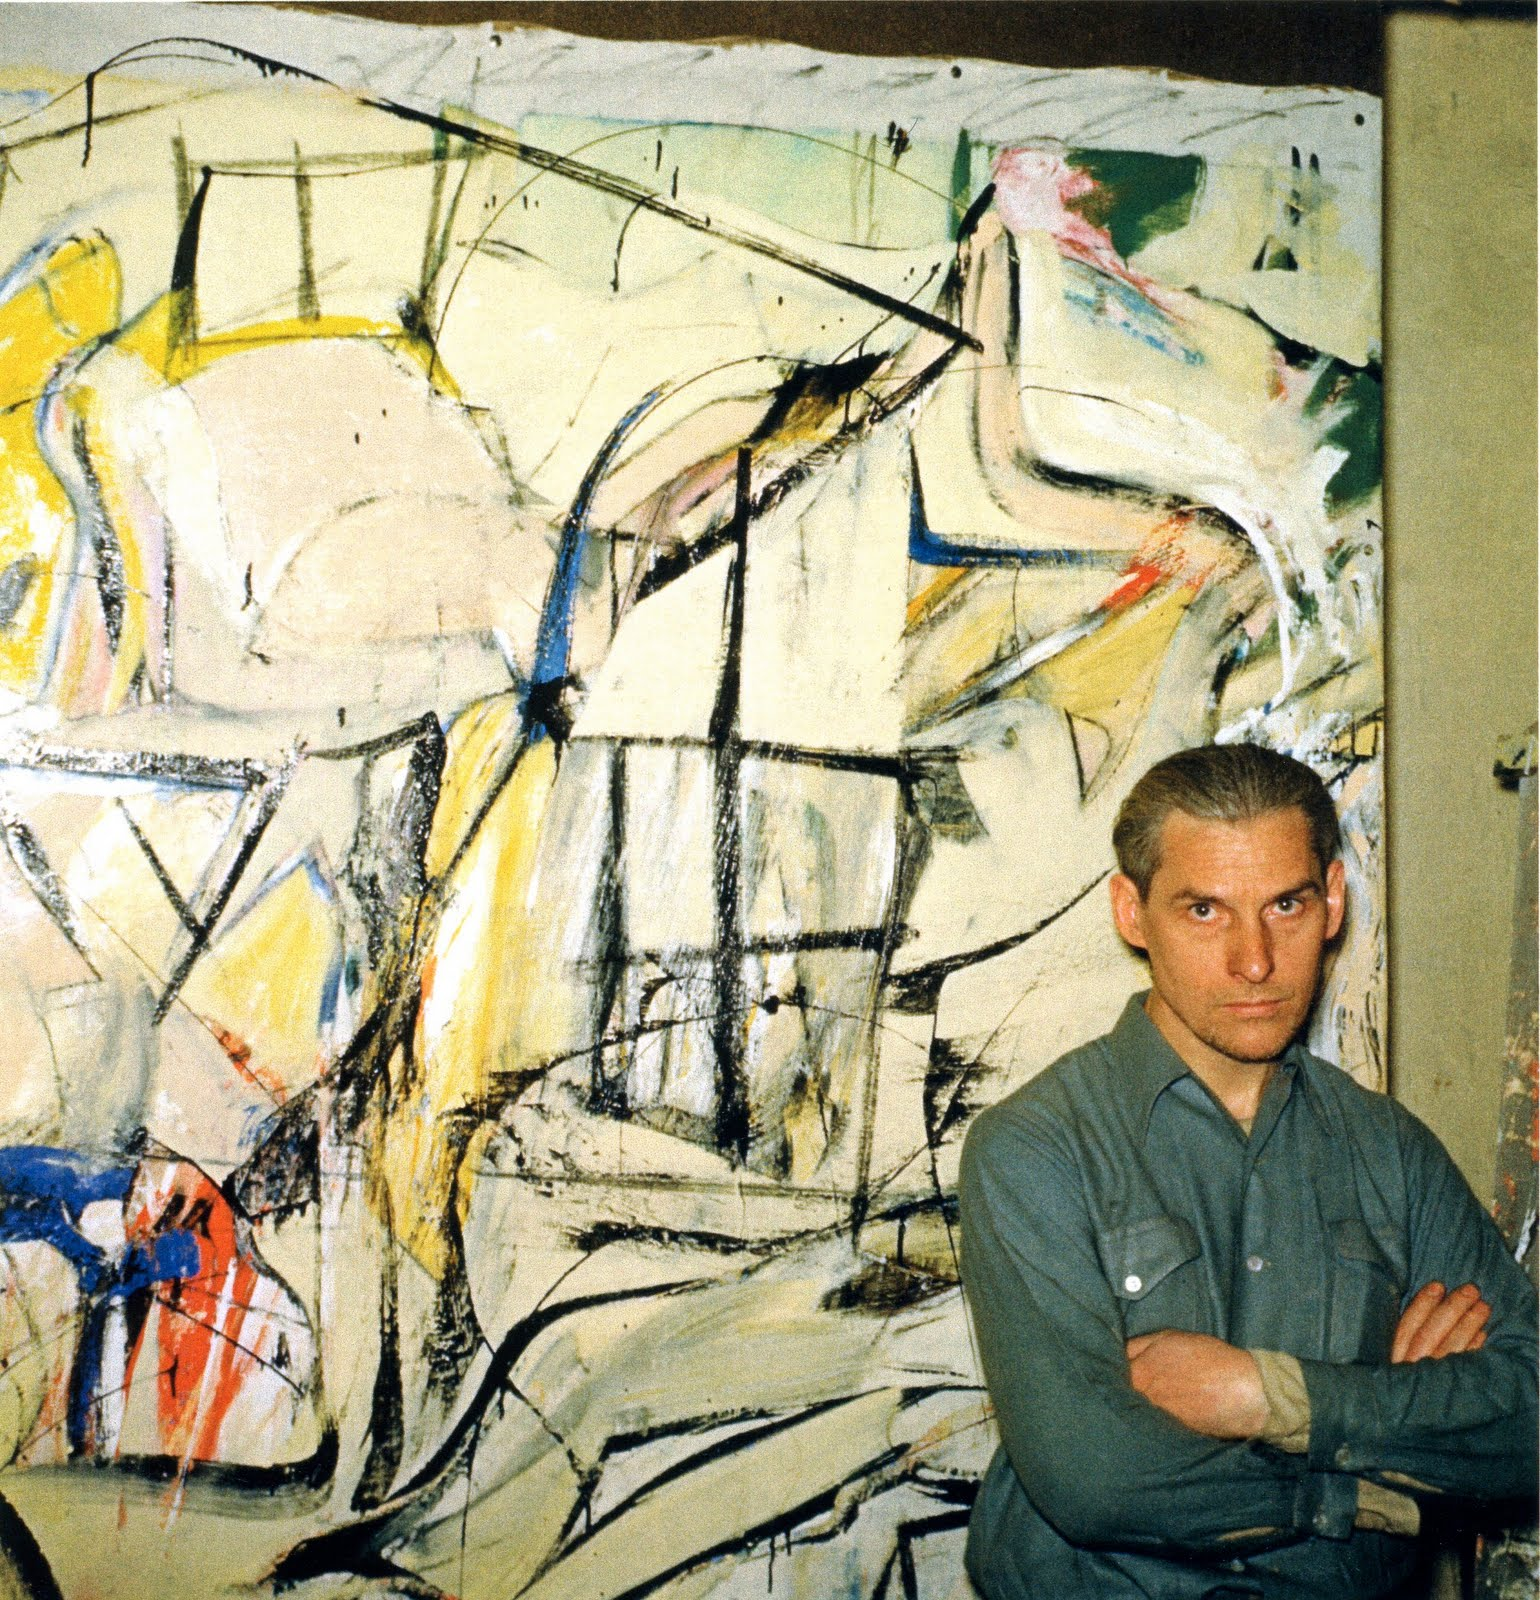 willem de kooning Exhibition september 18, 2011–january 9, 2012 this is the first major museum exhibition devoted to the full scope of the career of willem de kooning, widely considered to be among the most.